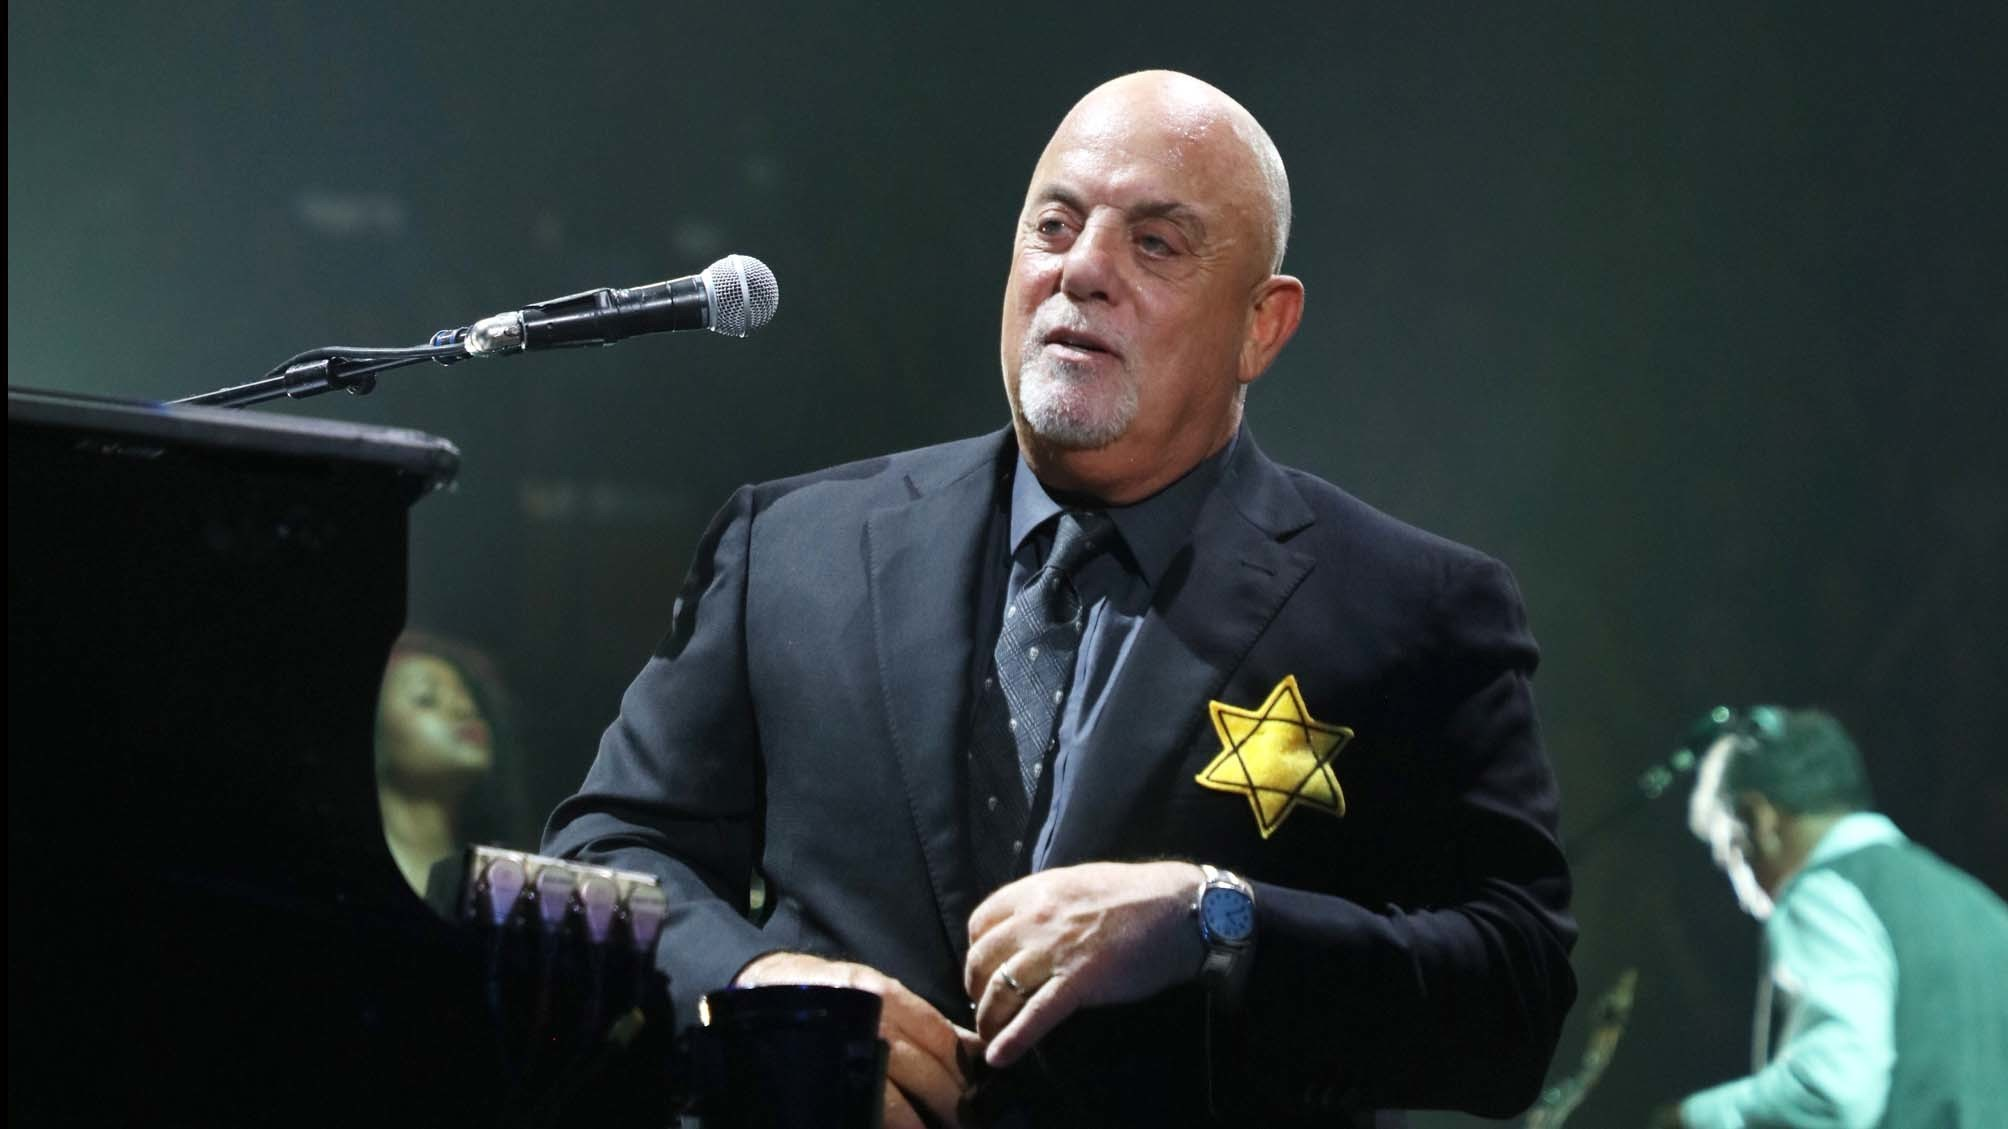 Billy Joel wears a jacket with a Star of David badge on the front — there was an identical badge on the back — at Madison Square Garden on Monday. (Myrna M. Suarez / Getty Images)